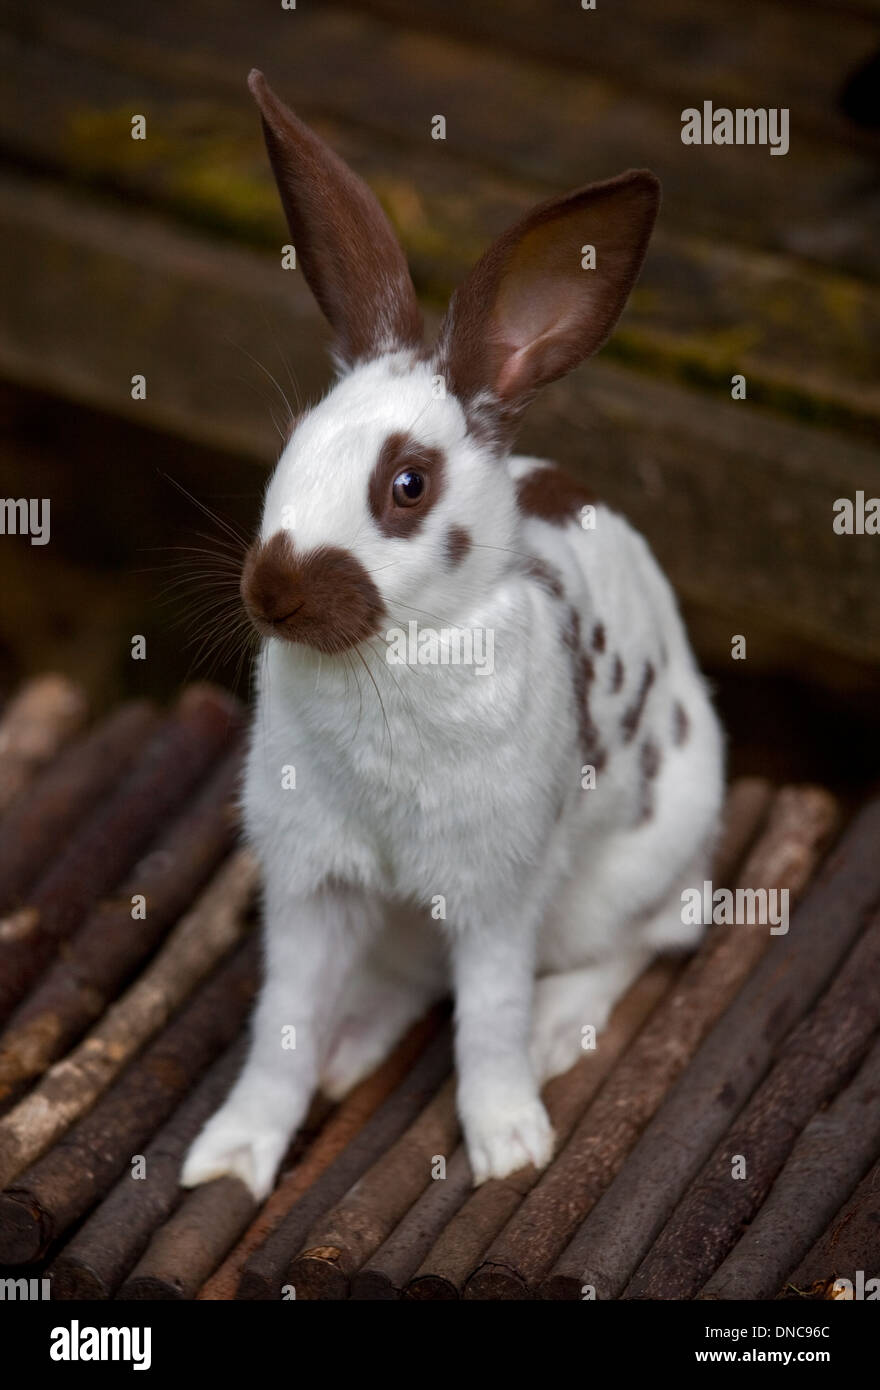 Chocolate English Spot Rabbit juvenile female - Stock Image